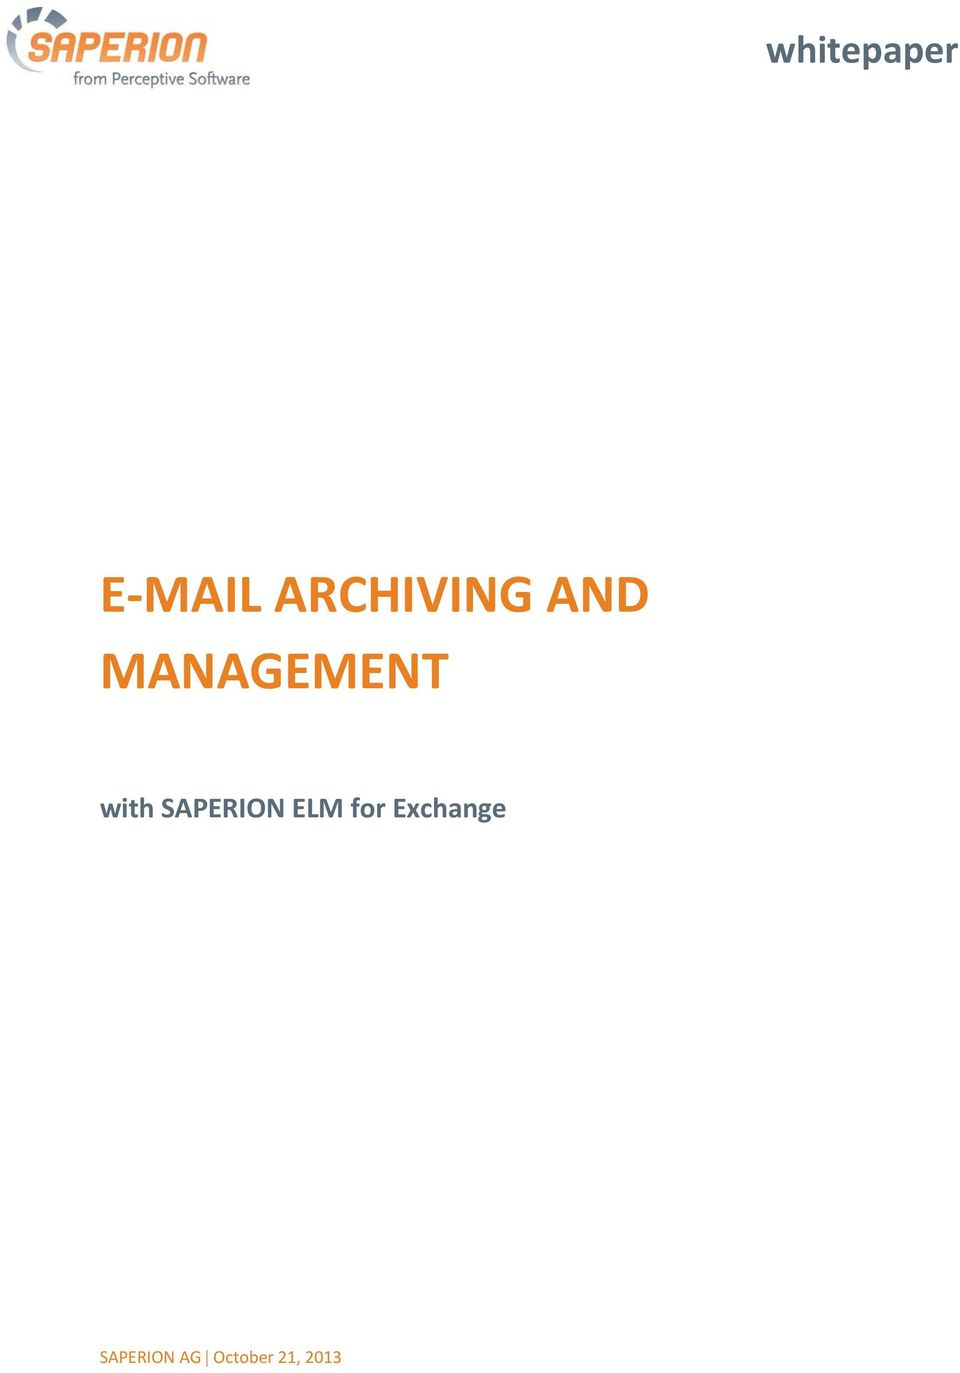 with SAPERION ELM for